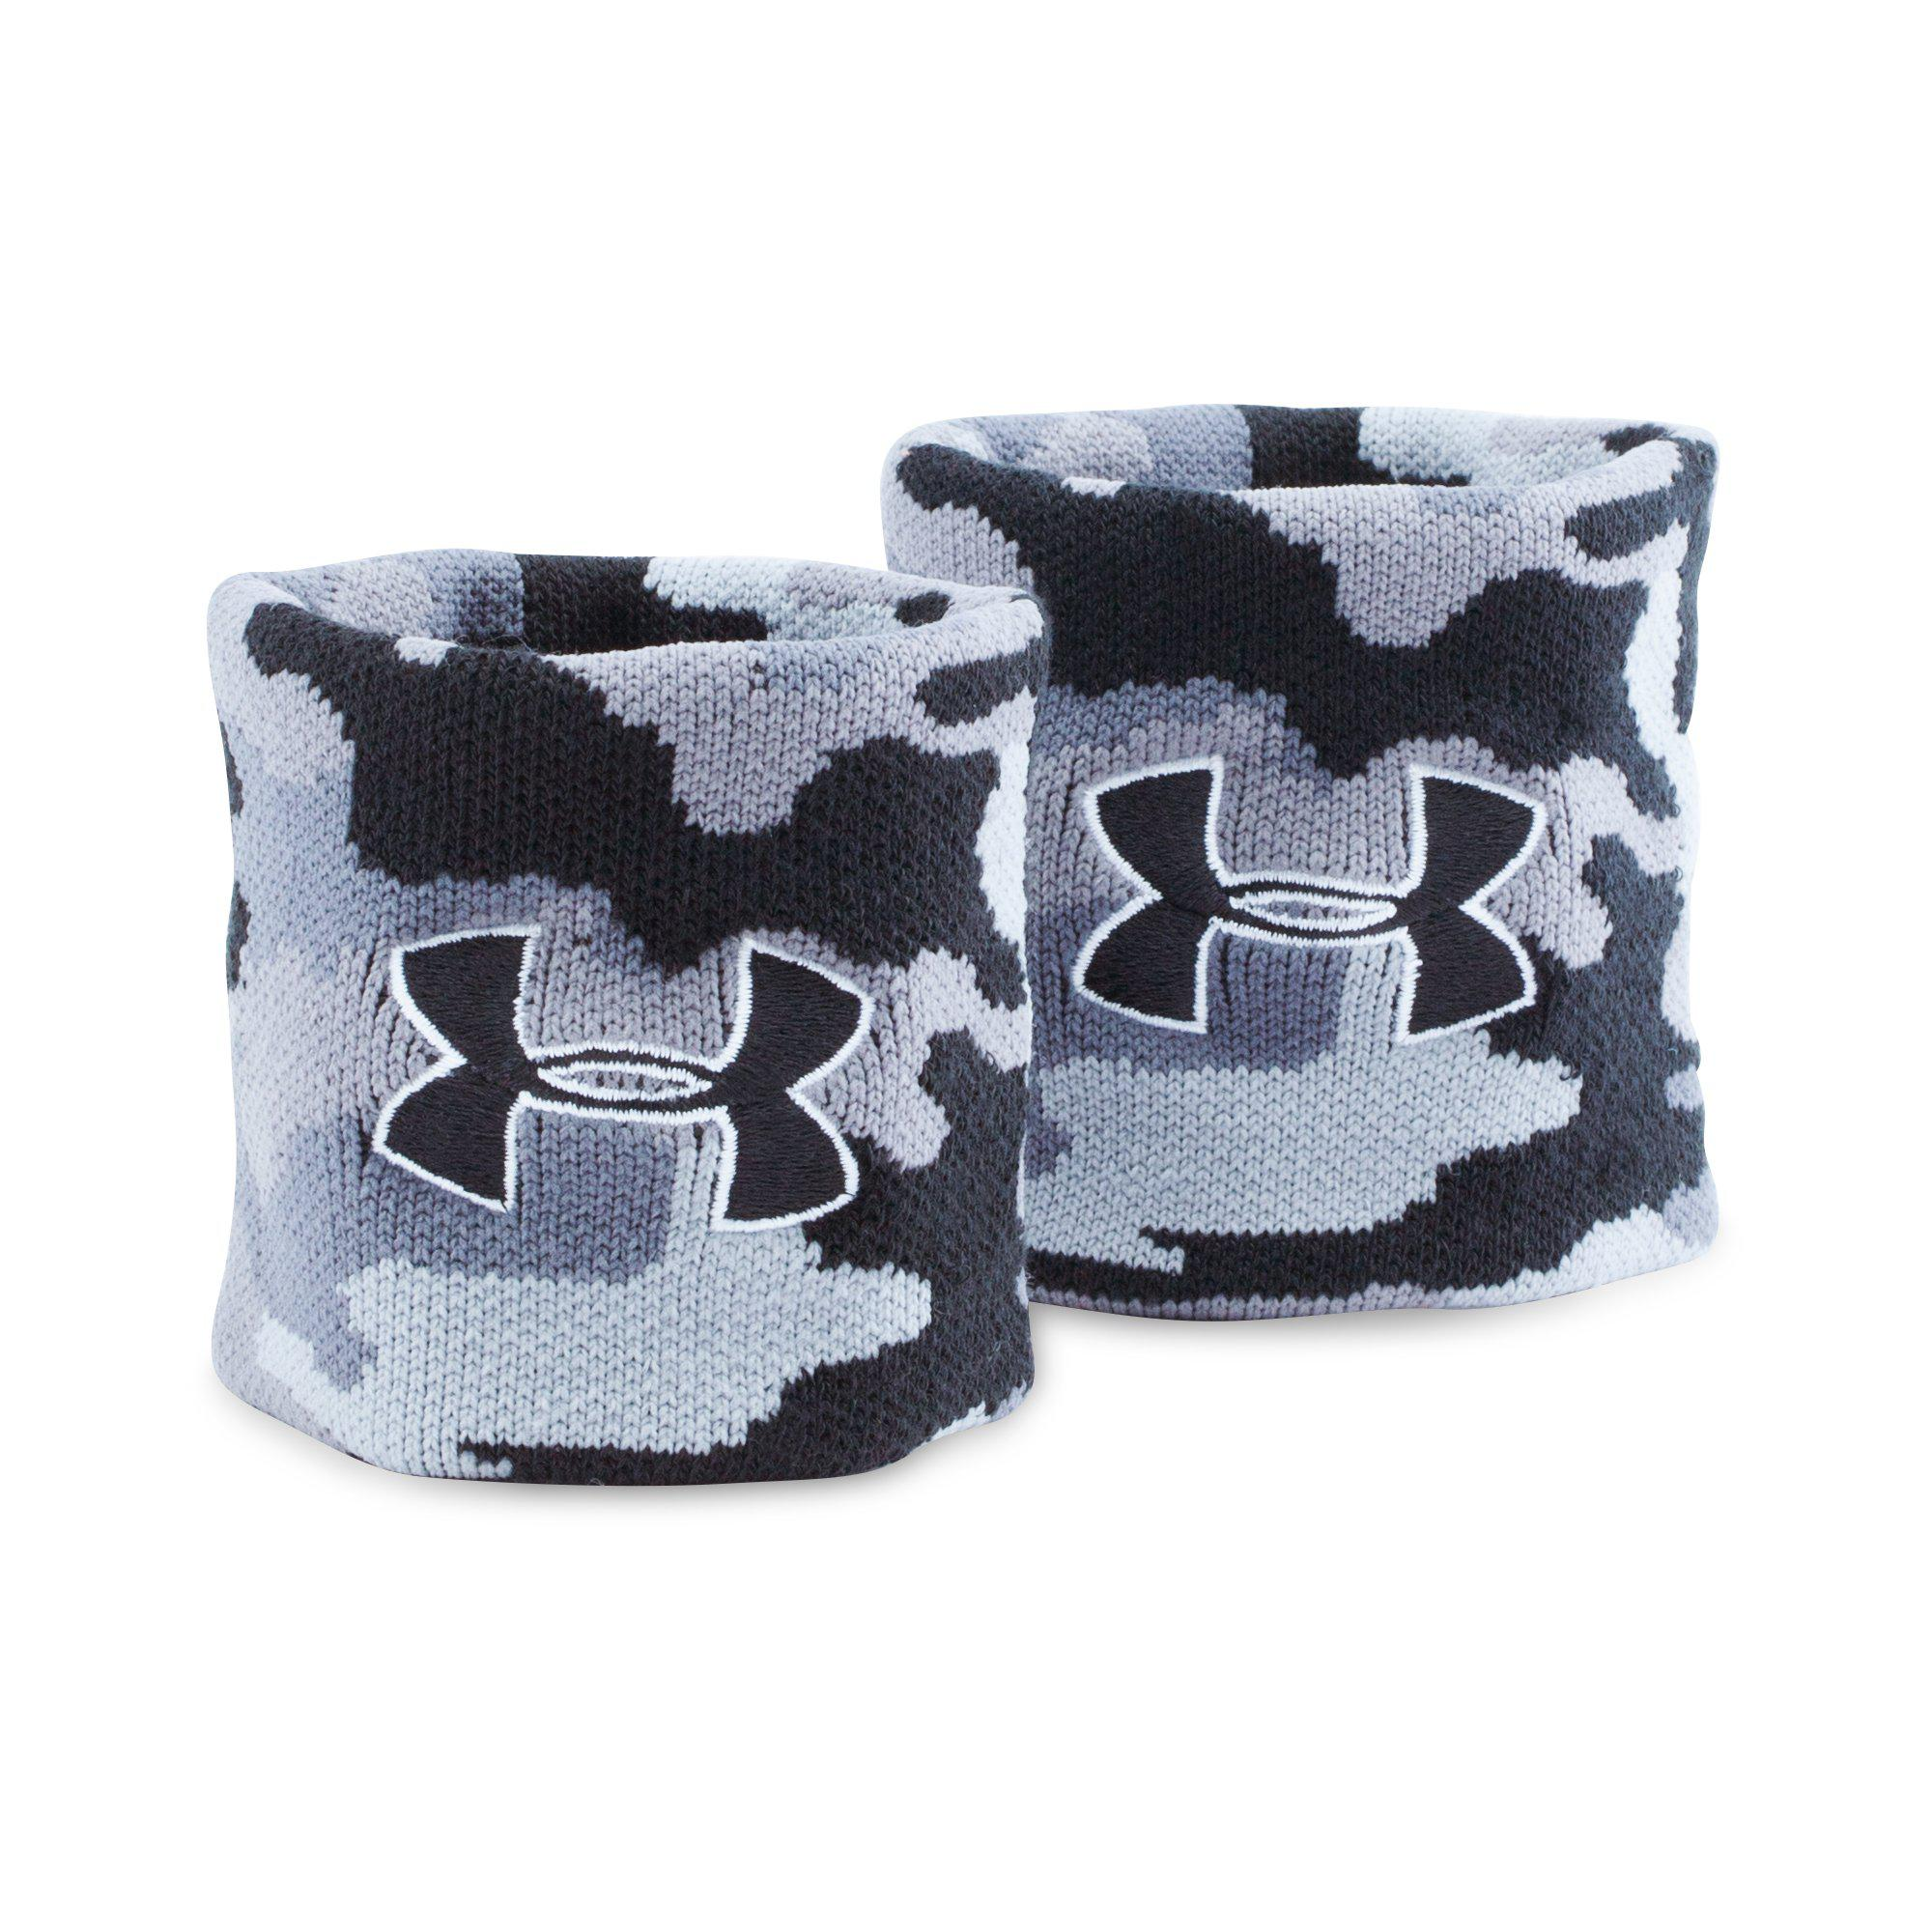 Under Armour Polsini Camouflage Grigio (2x) 1